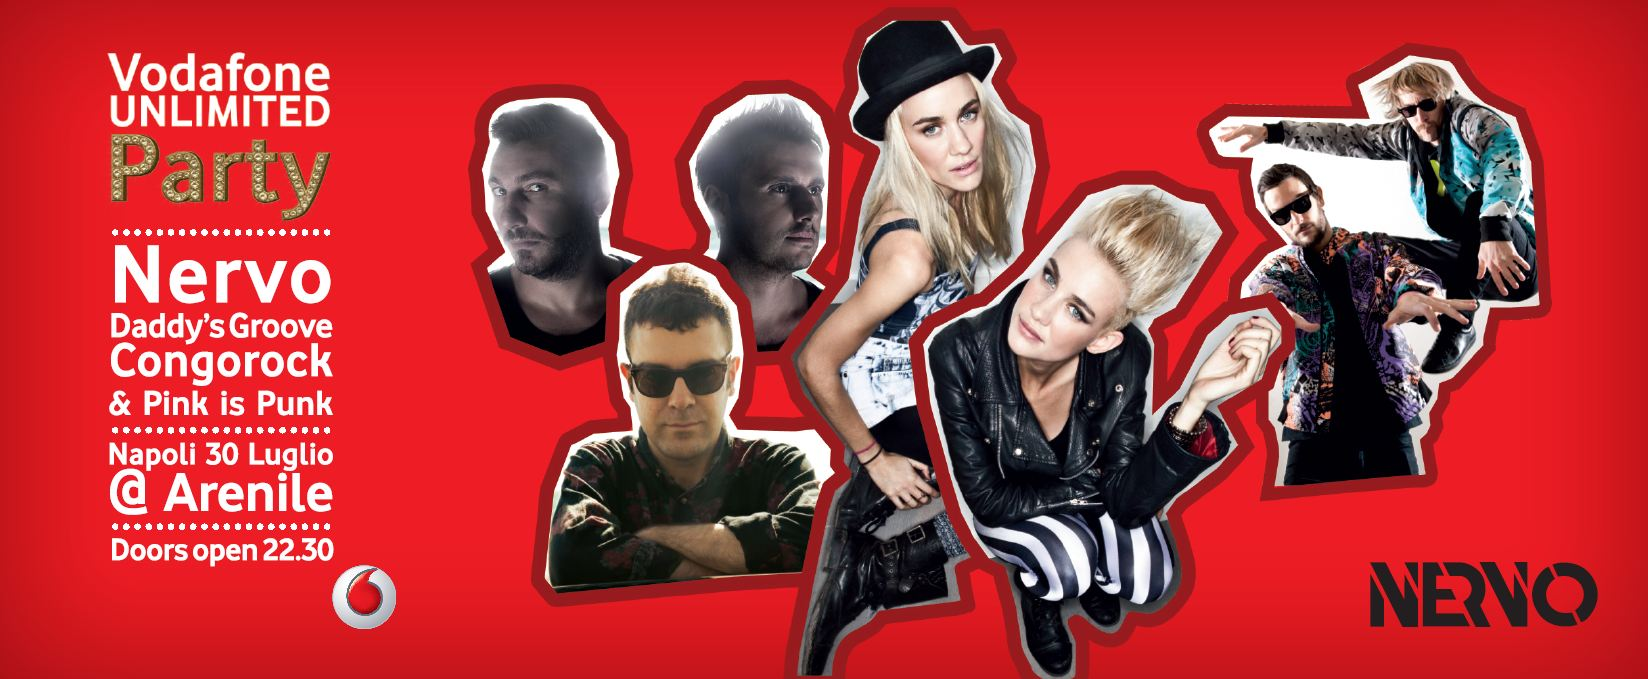 Cattura VODAFONE UNLIMITED PARTY   Nervo live show a Napoli